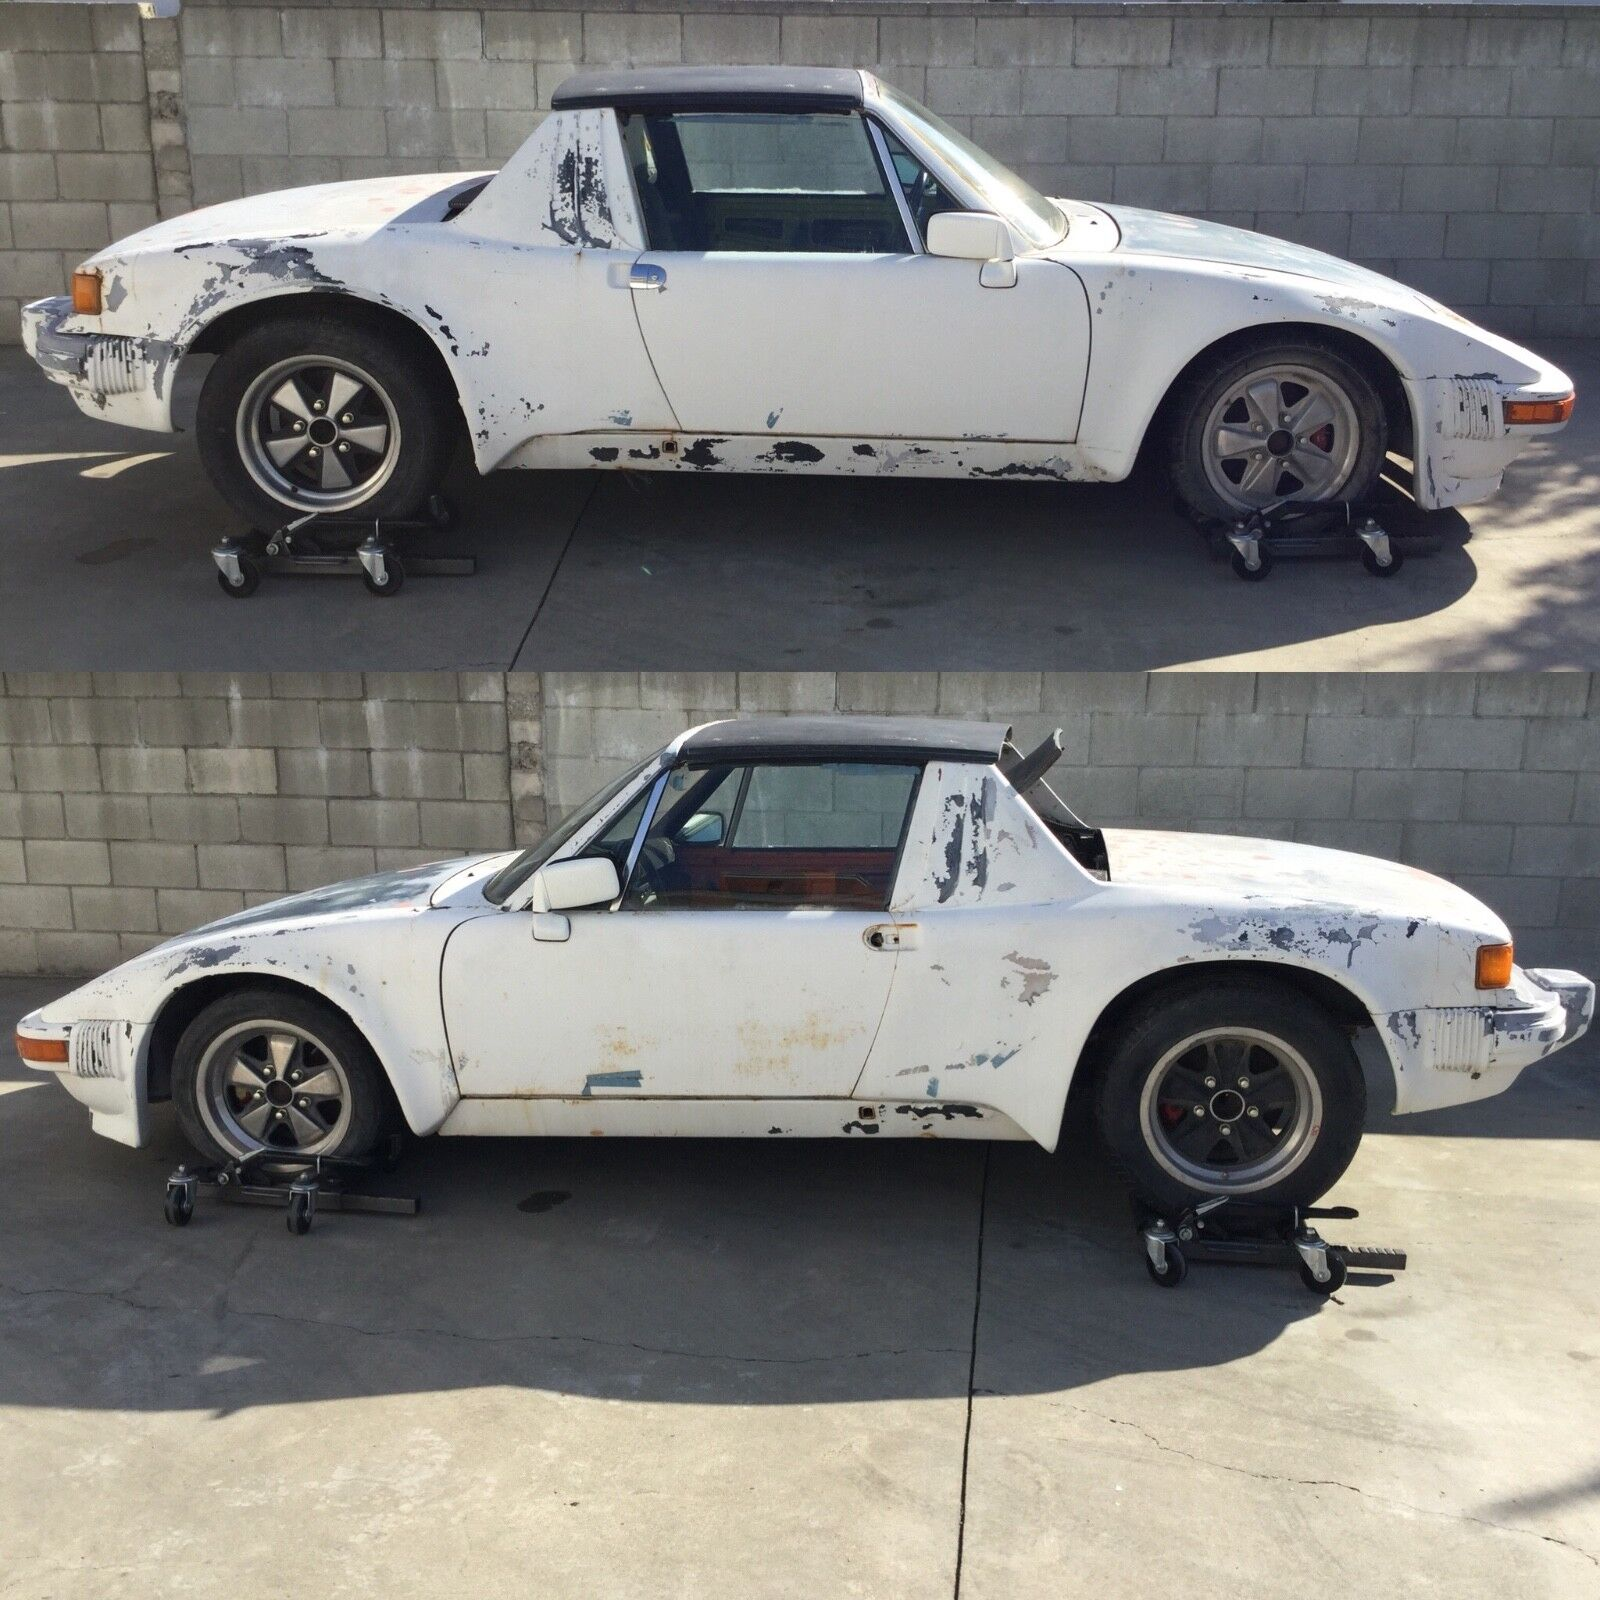 1974 Porsche 914  Porsche 914 Chevy V8 conversion car w/ heavy modifications slant nose 1974 5 Lug